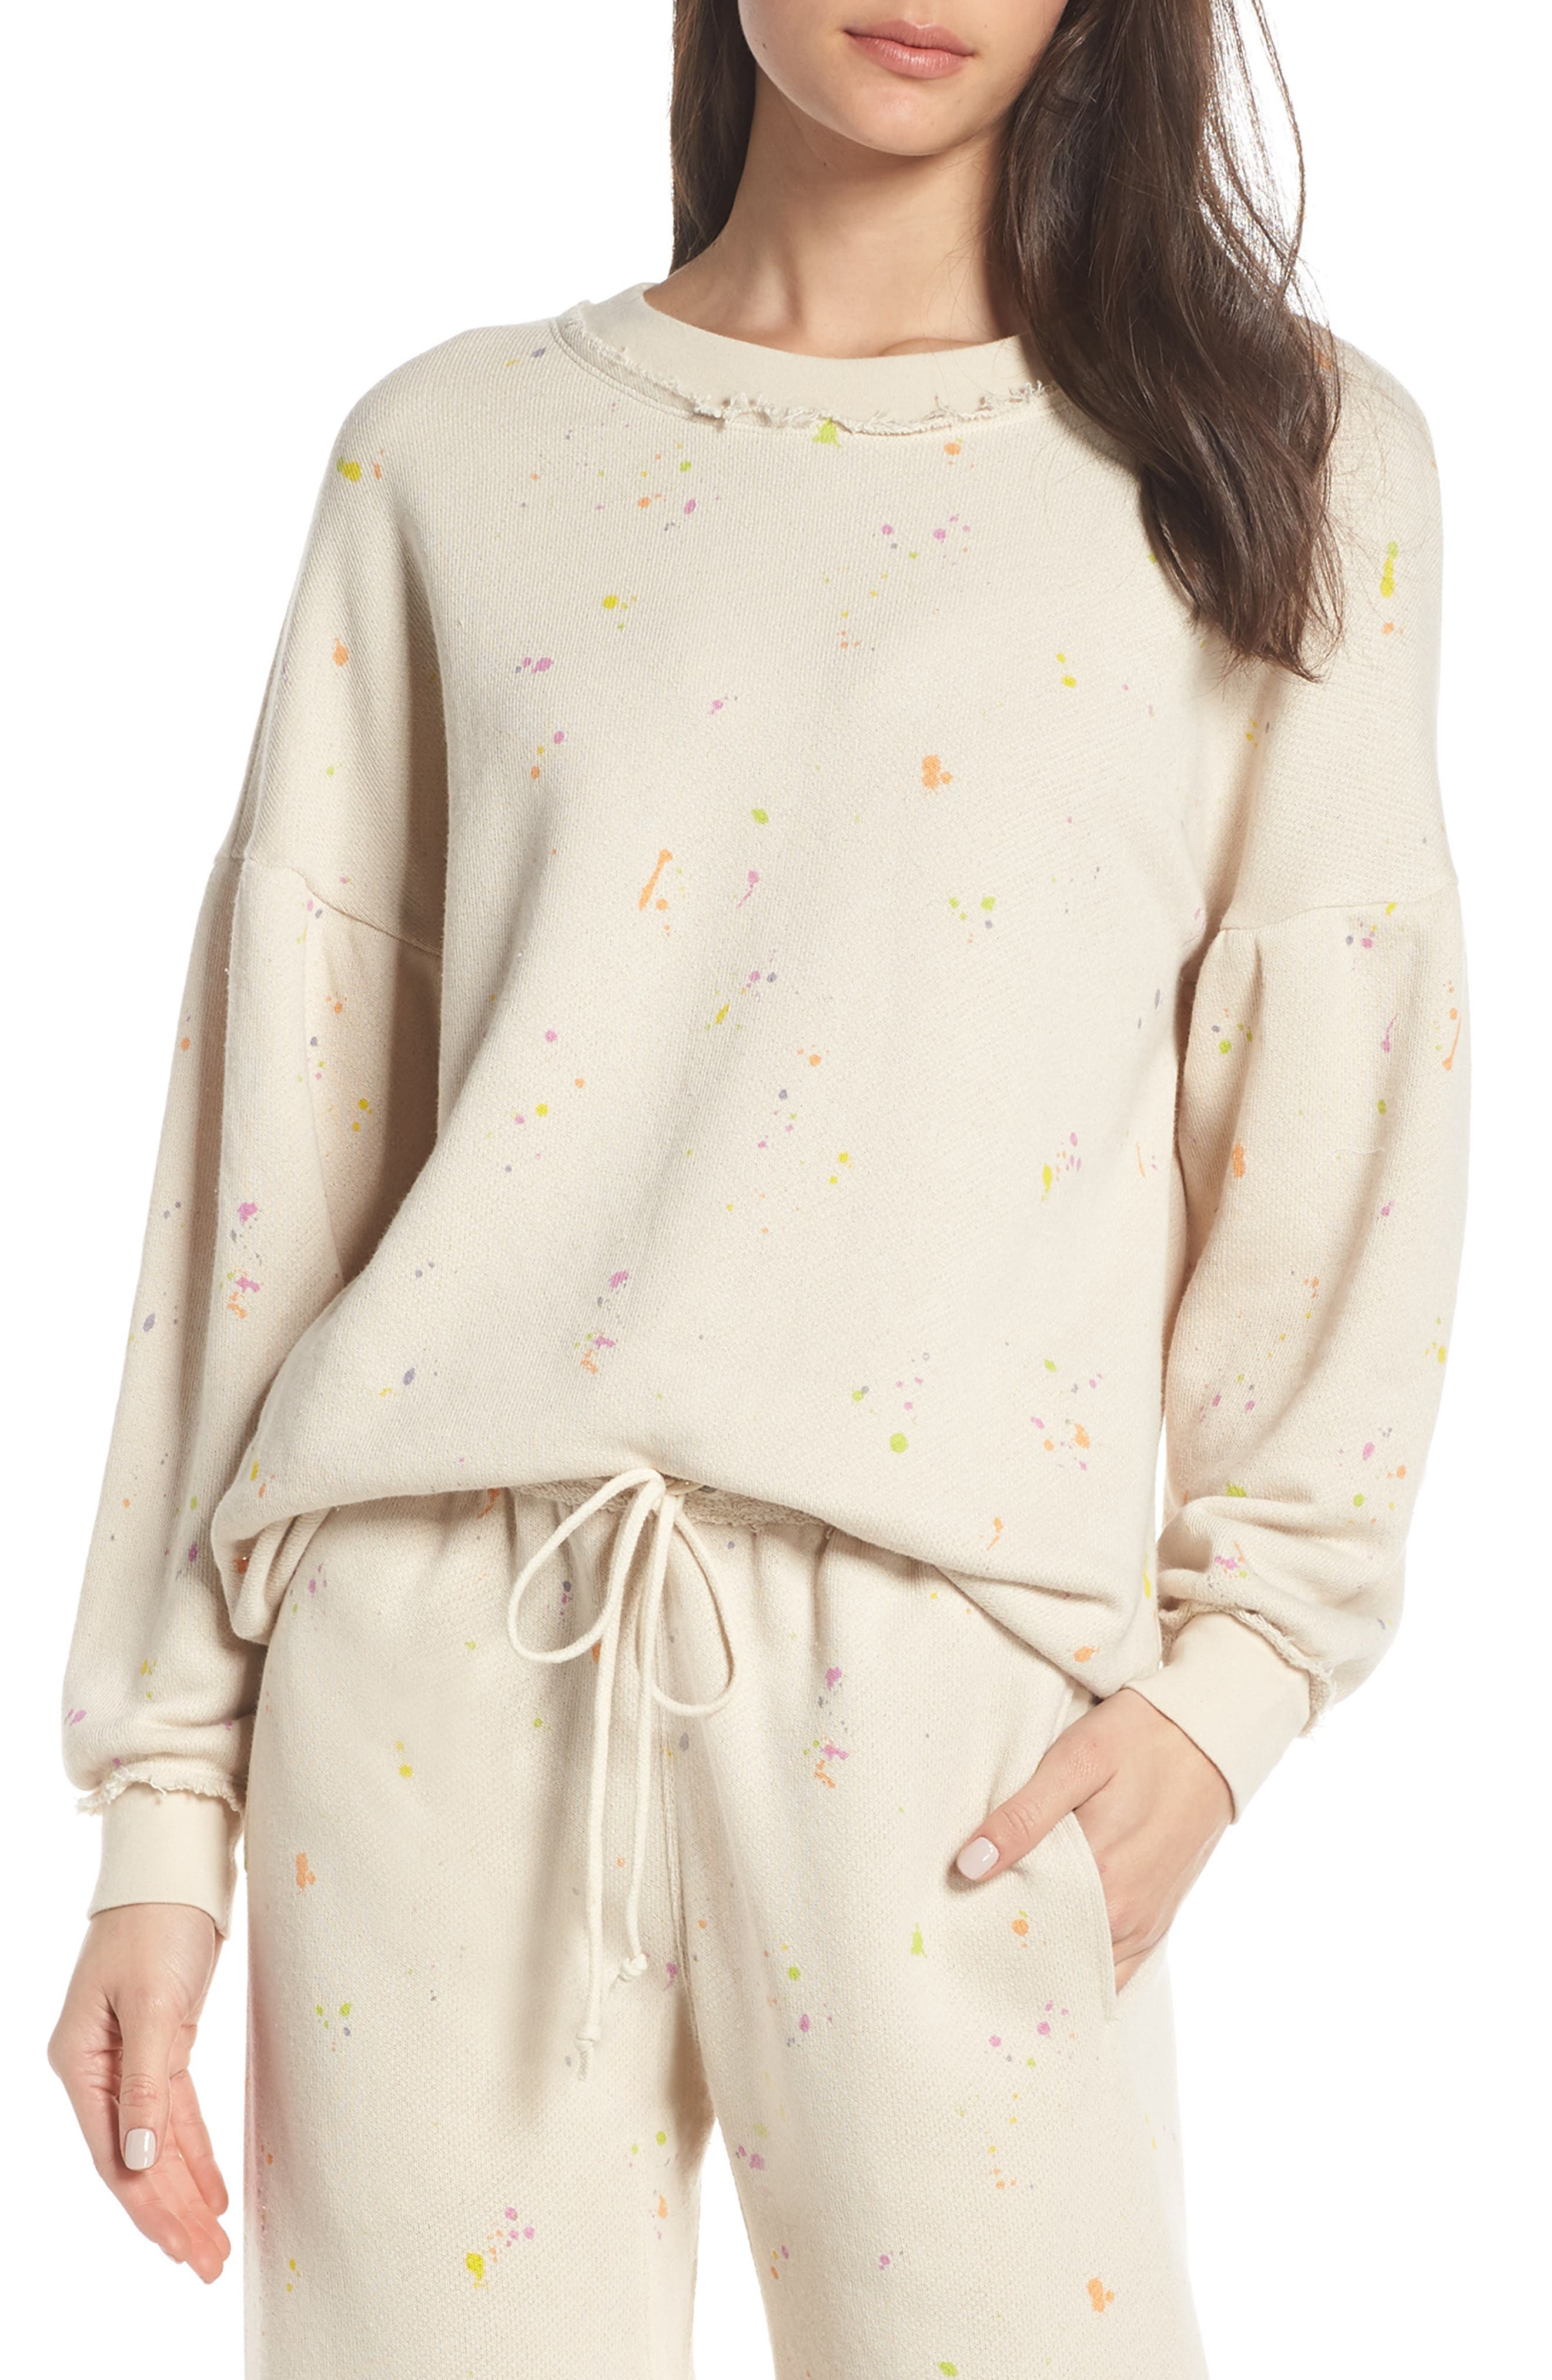 FREE PEOPLE MOVEMENT, Make It Count Printed Sweatshirt, Main thumbnail 1, color, IVORY